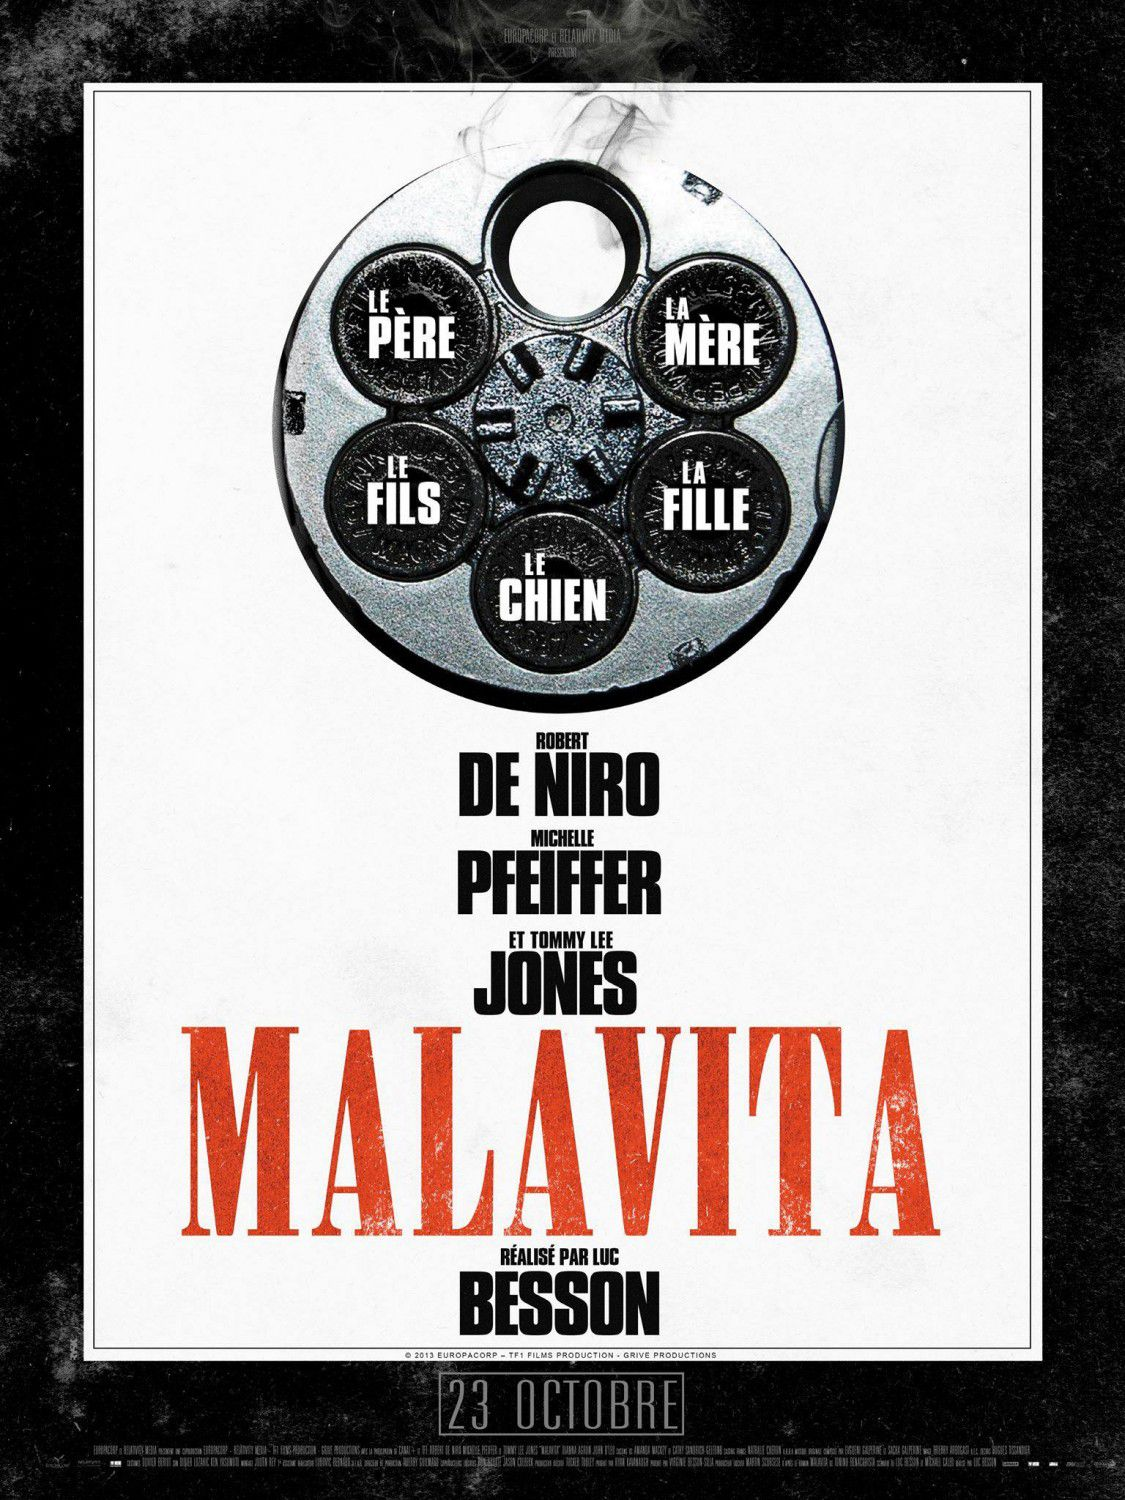 Cose nostre - Malavita - the Family - Luc Besson film poster